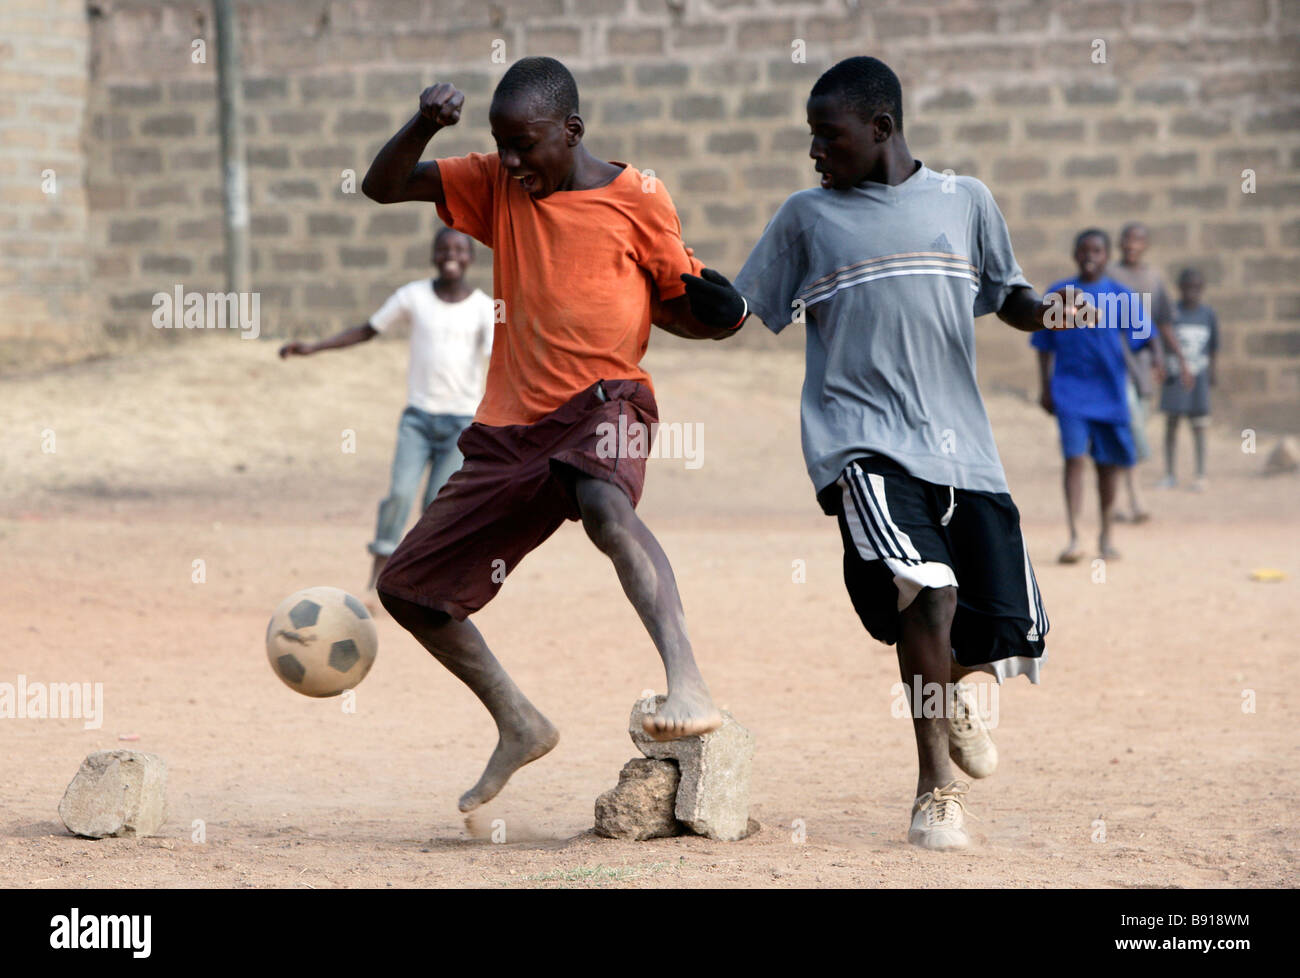 Nigeria: young boys play football, soccer - Stock Image